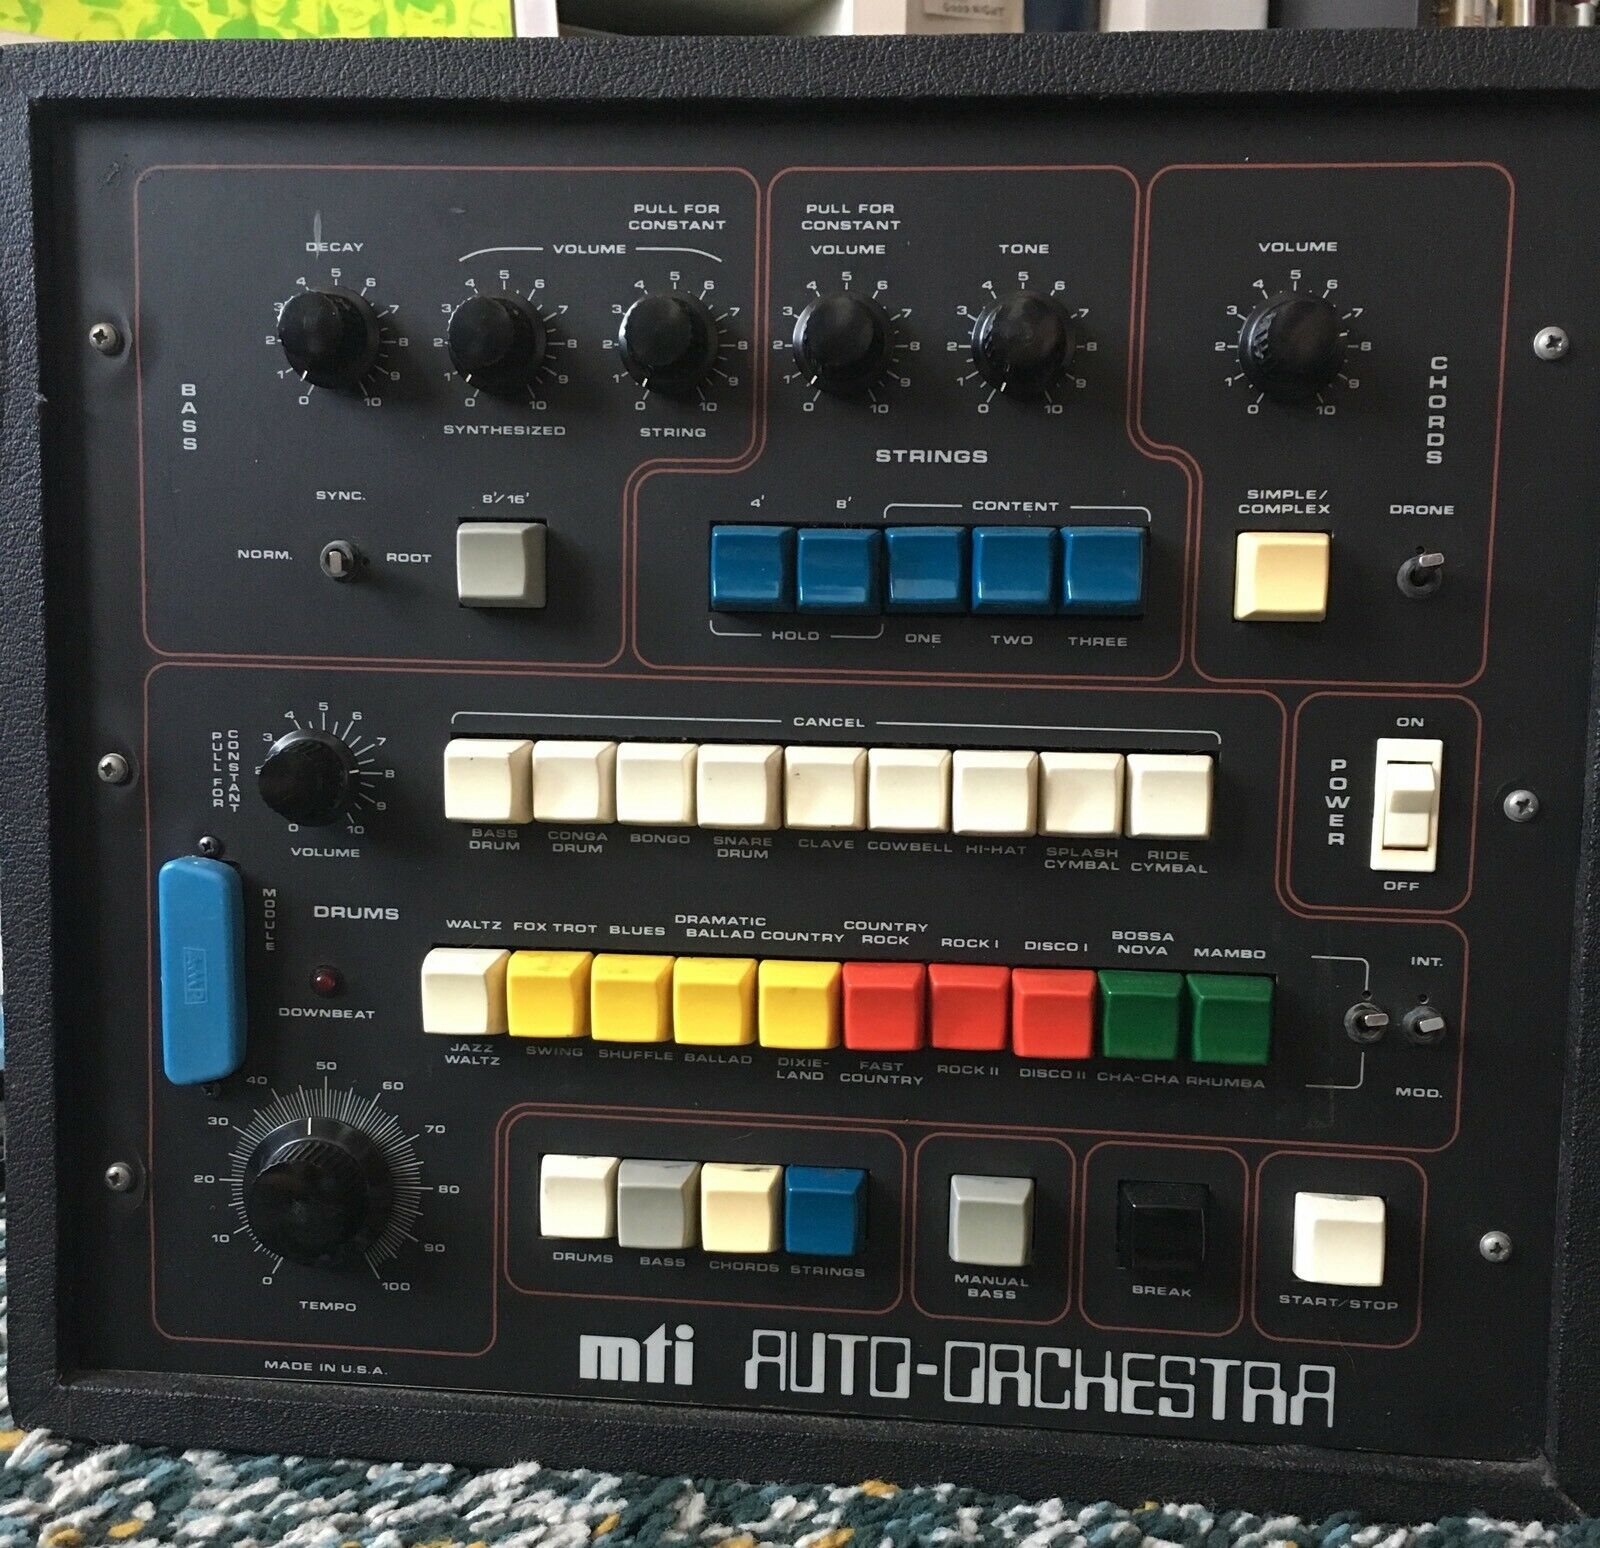 matrixsynth mti auto orchestra vintage drum machine bass synthesizer electronic instrument. Black Bedroom Furniture Sets. Home Design Ideas